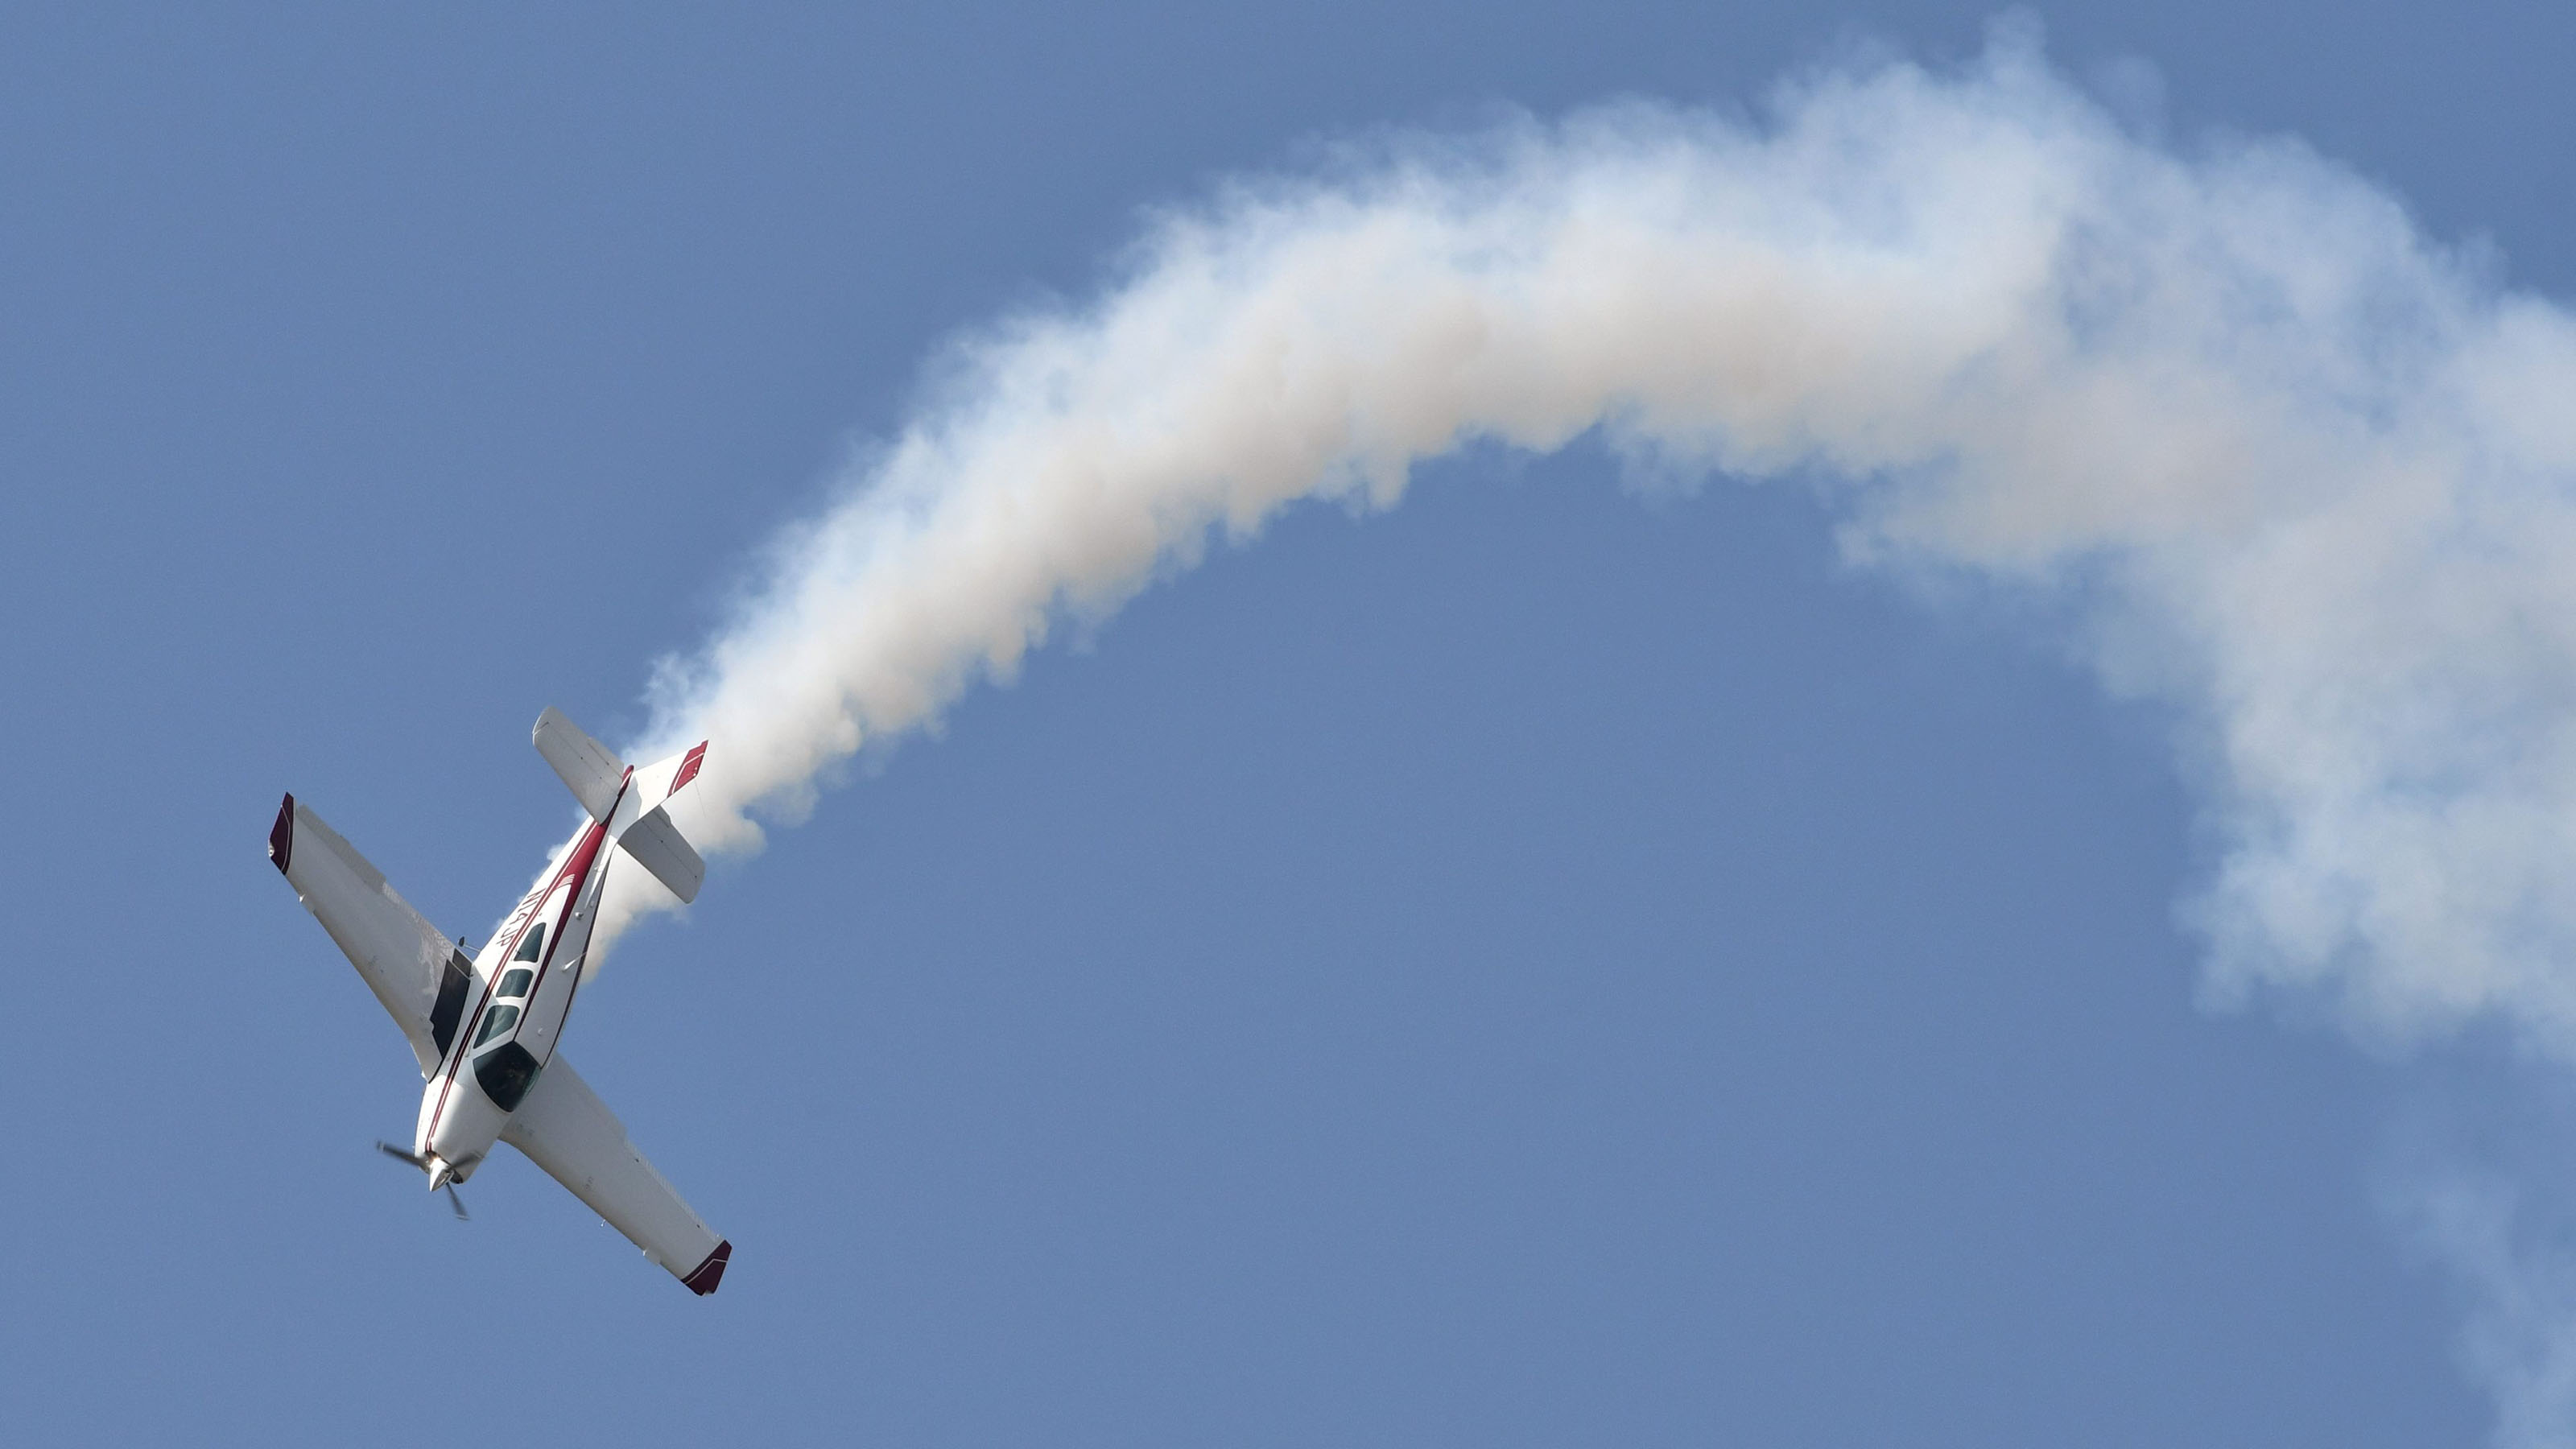 Aerobatics in a Bonanza? Yes, if you're Jim Peitz, shown flying a routine in his Beechcraft F33C Bonanza during EAA AirVenture Oshkosh 2019. Photo by Mike Collins.